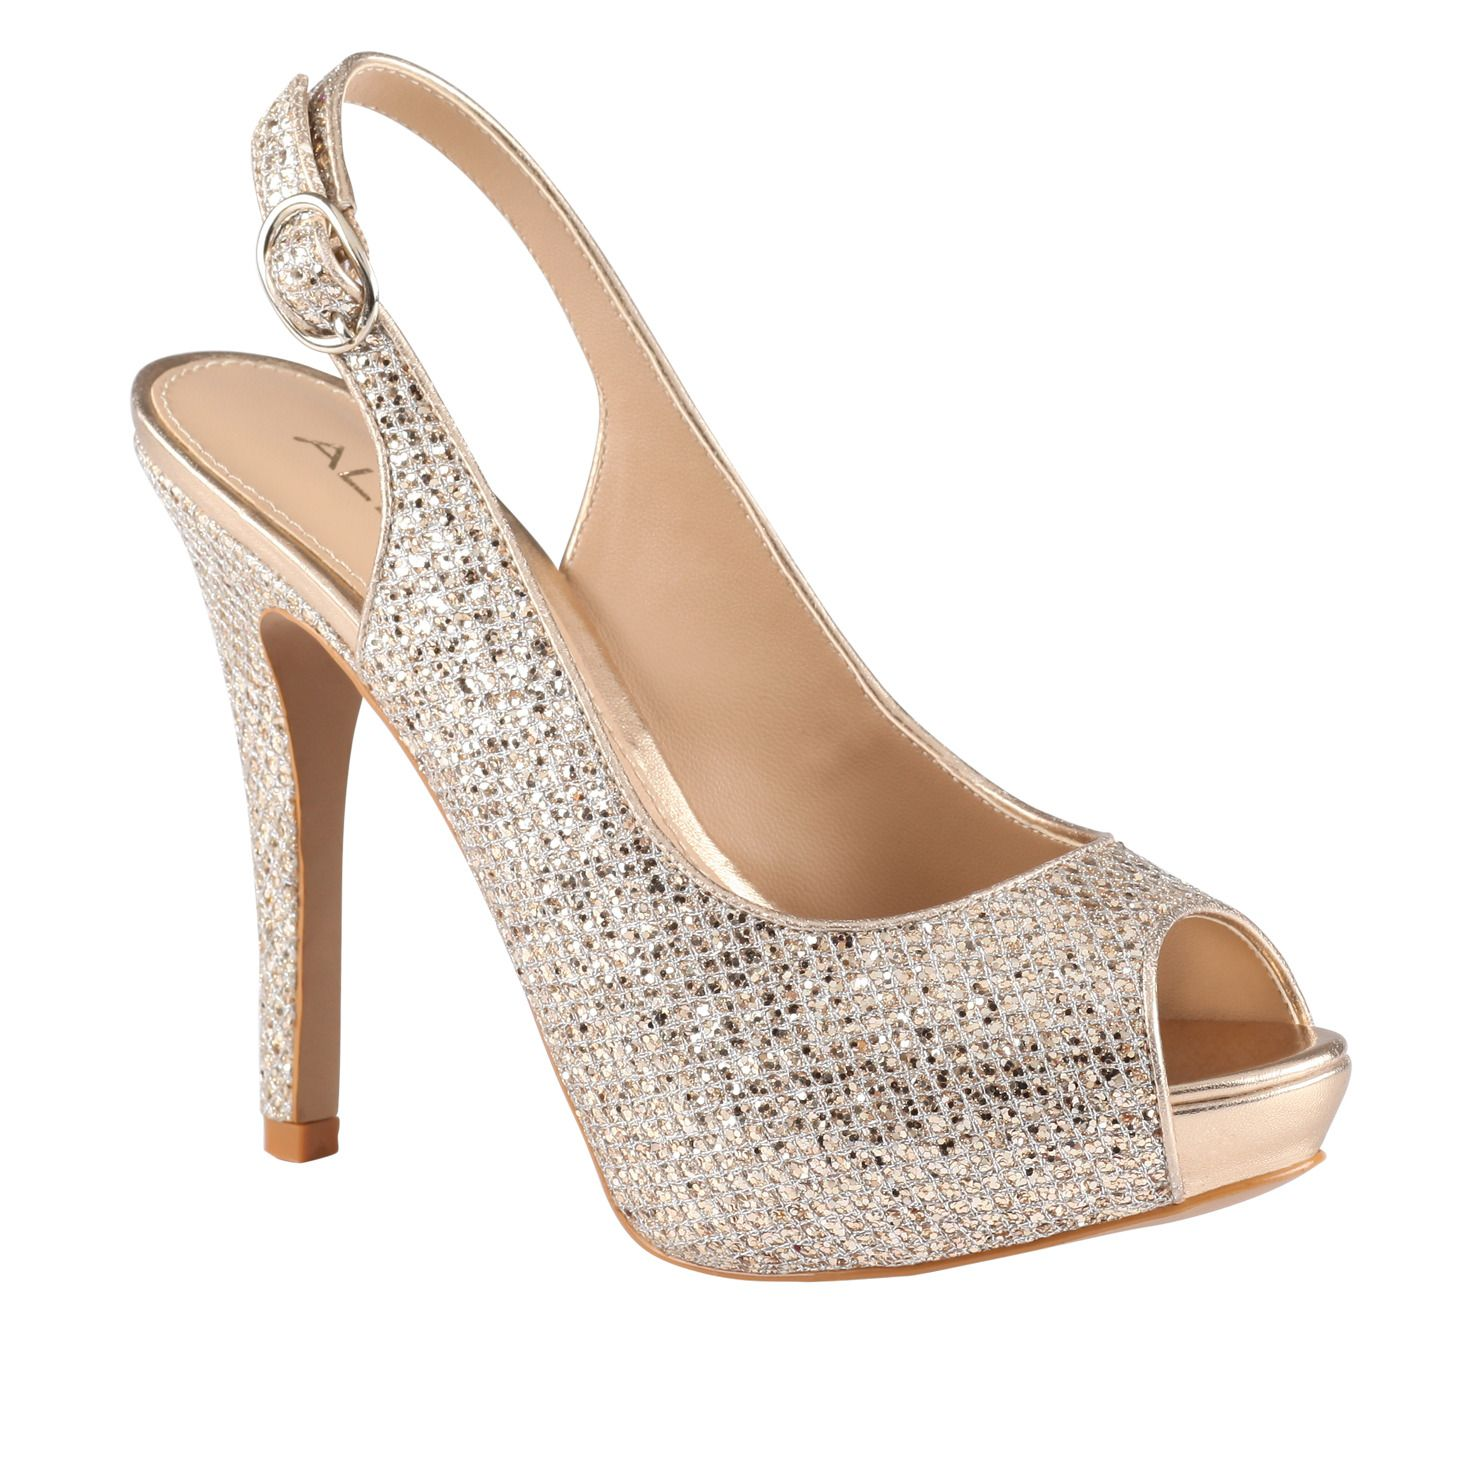 Women's Special Occasion Sandals For Sale At